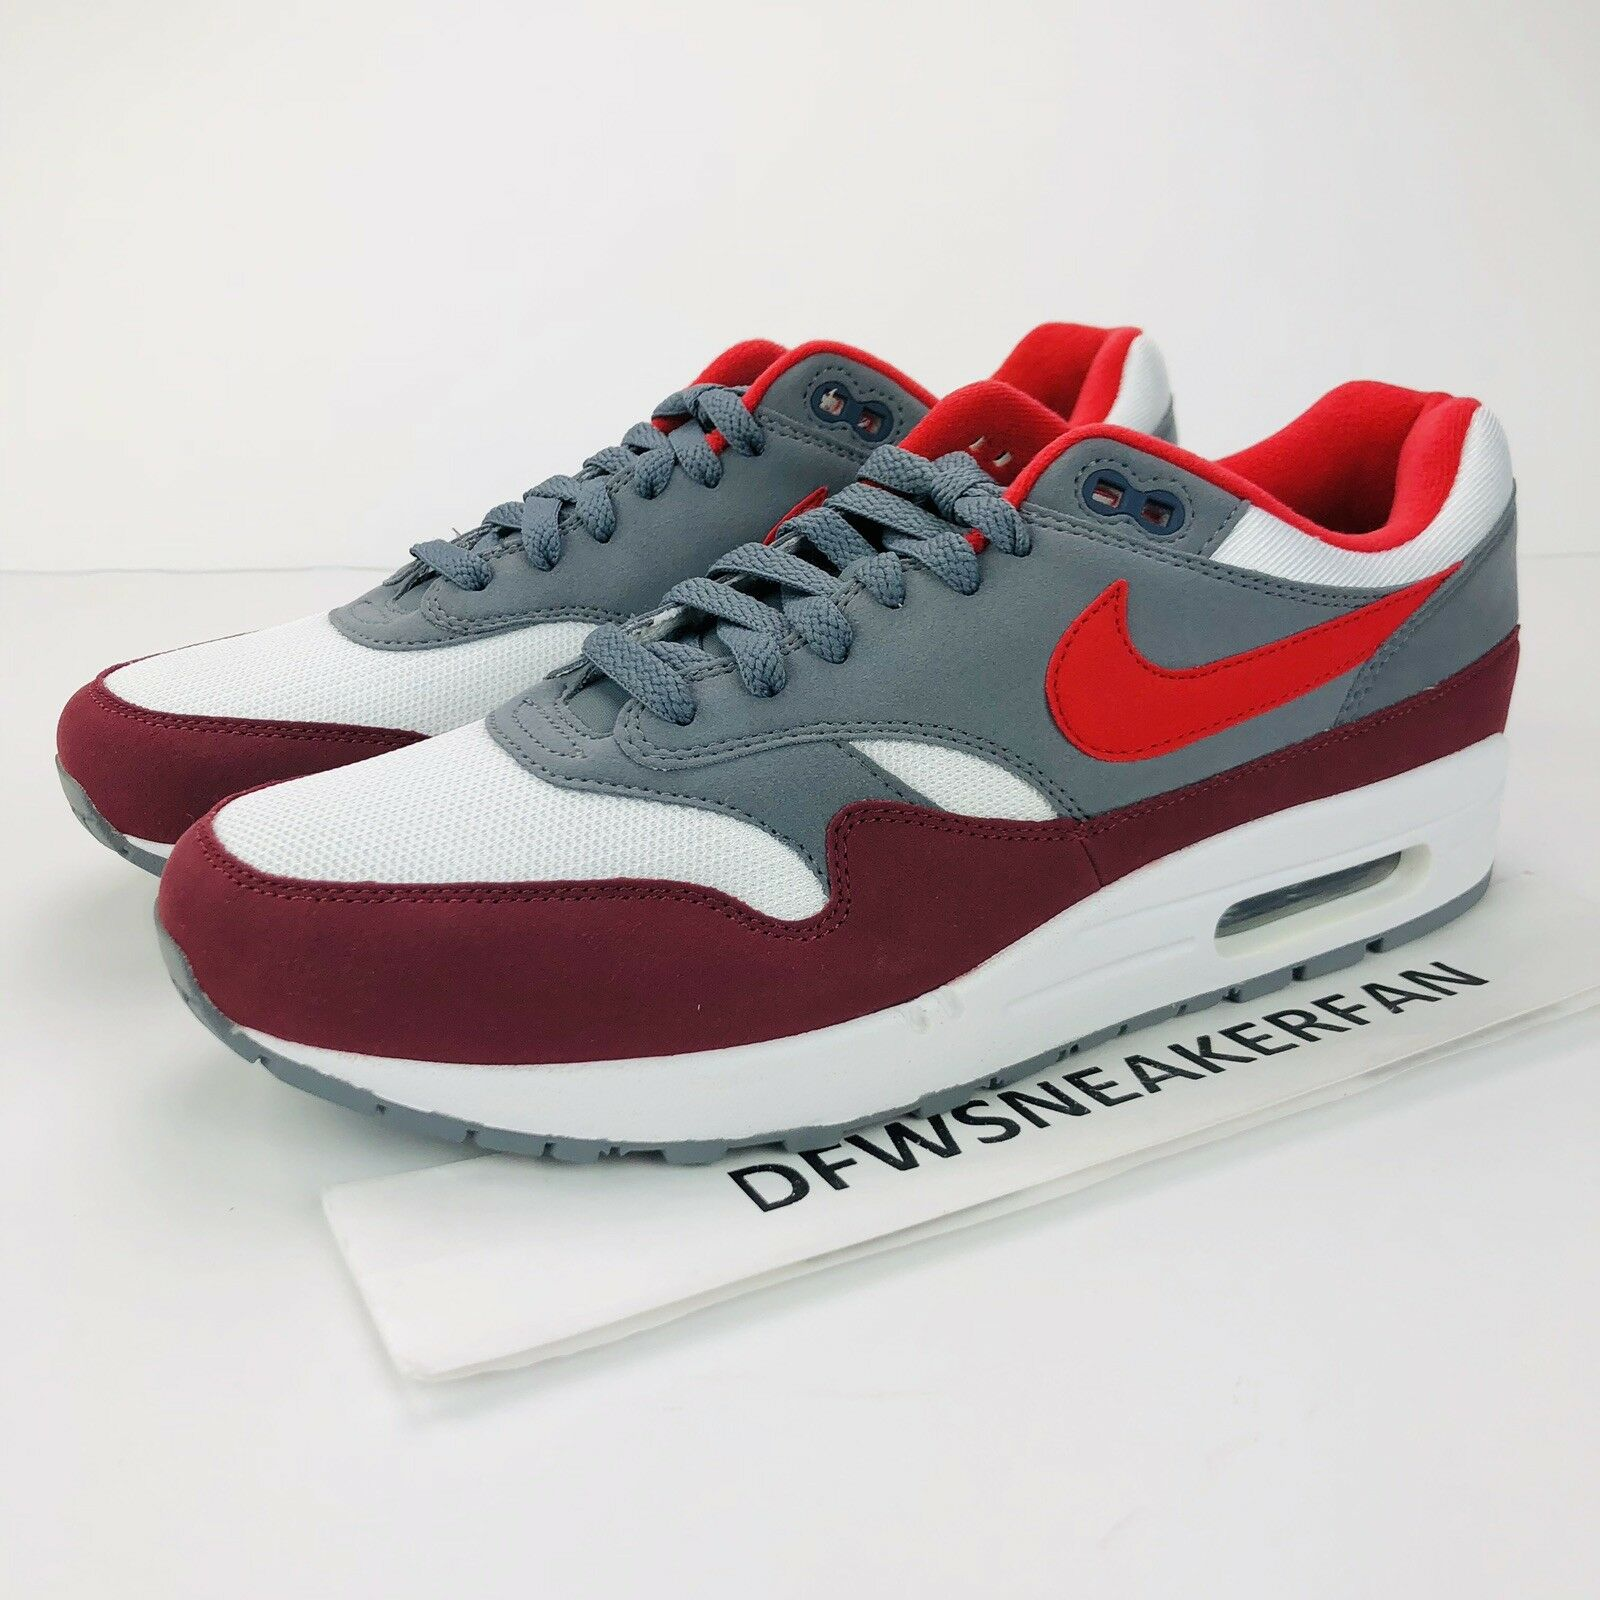 36c90f1f42 Nike Air Max 1 Men's 10 Red Cool Grey white AH8145-100 Size New ...